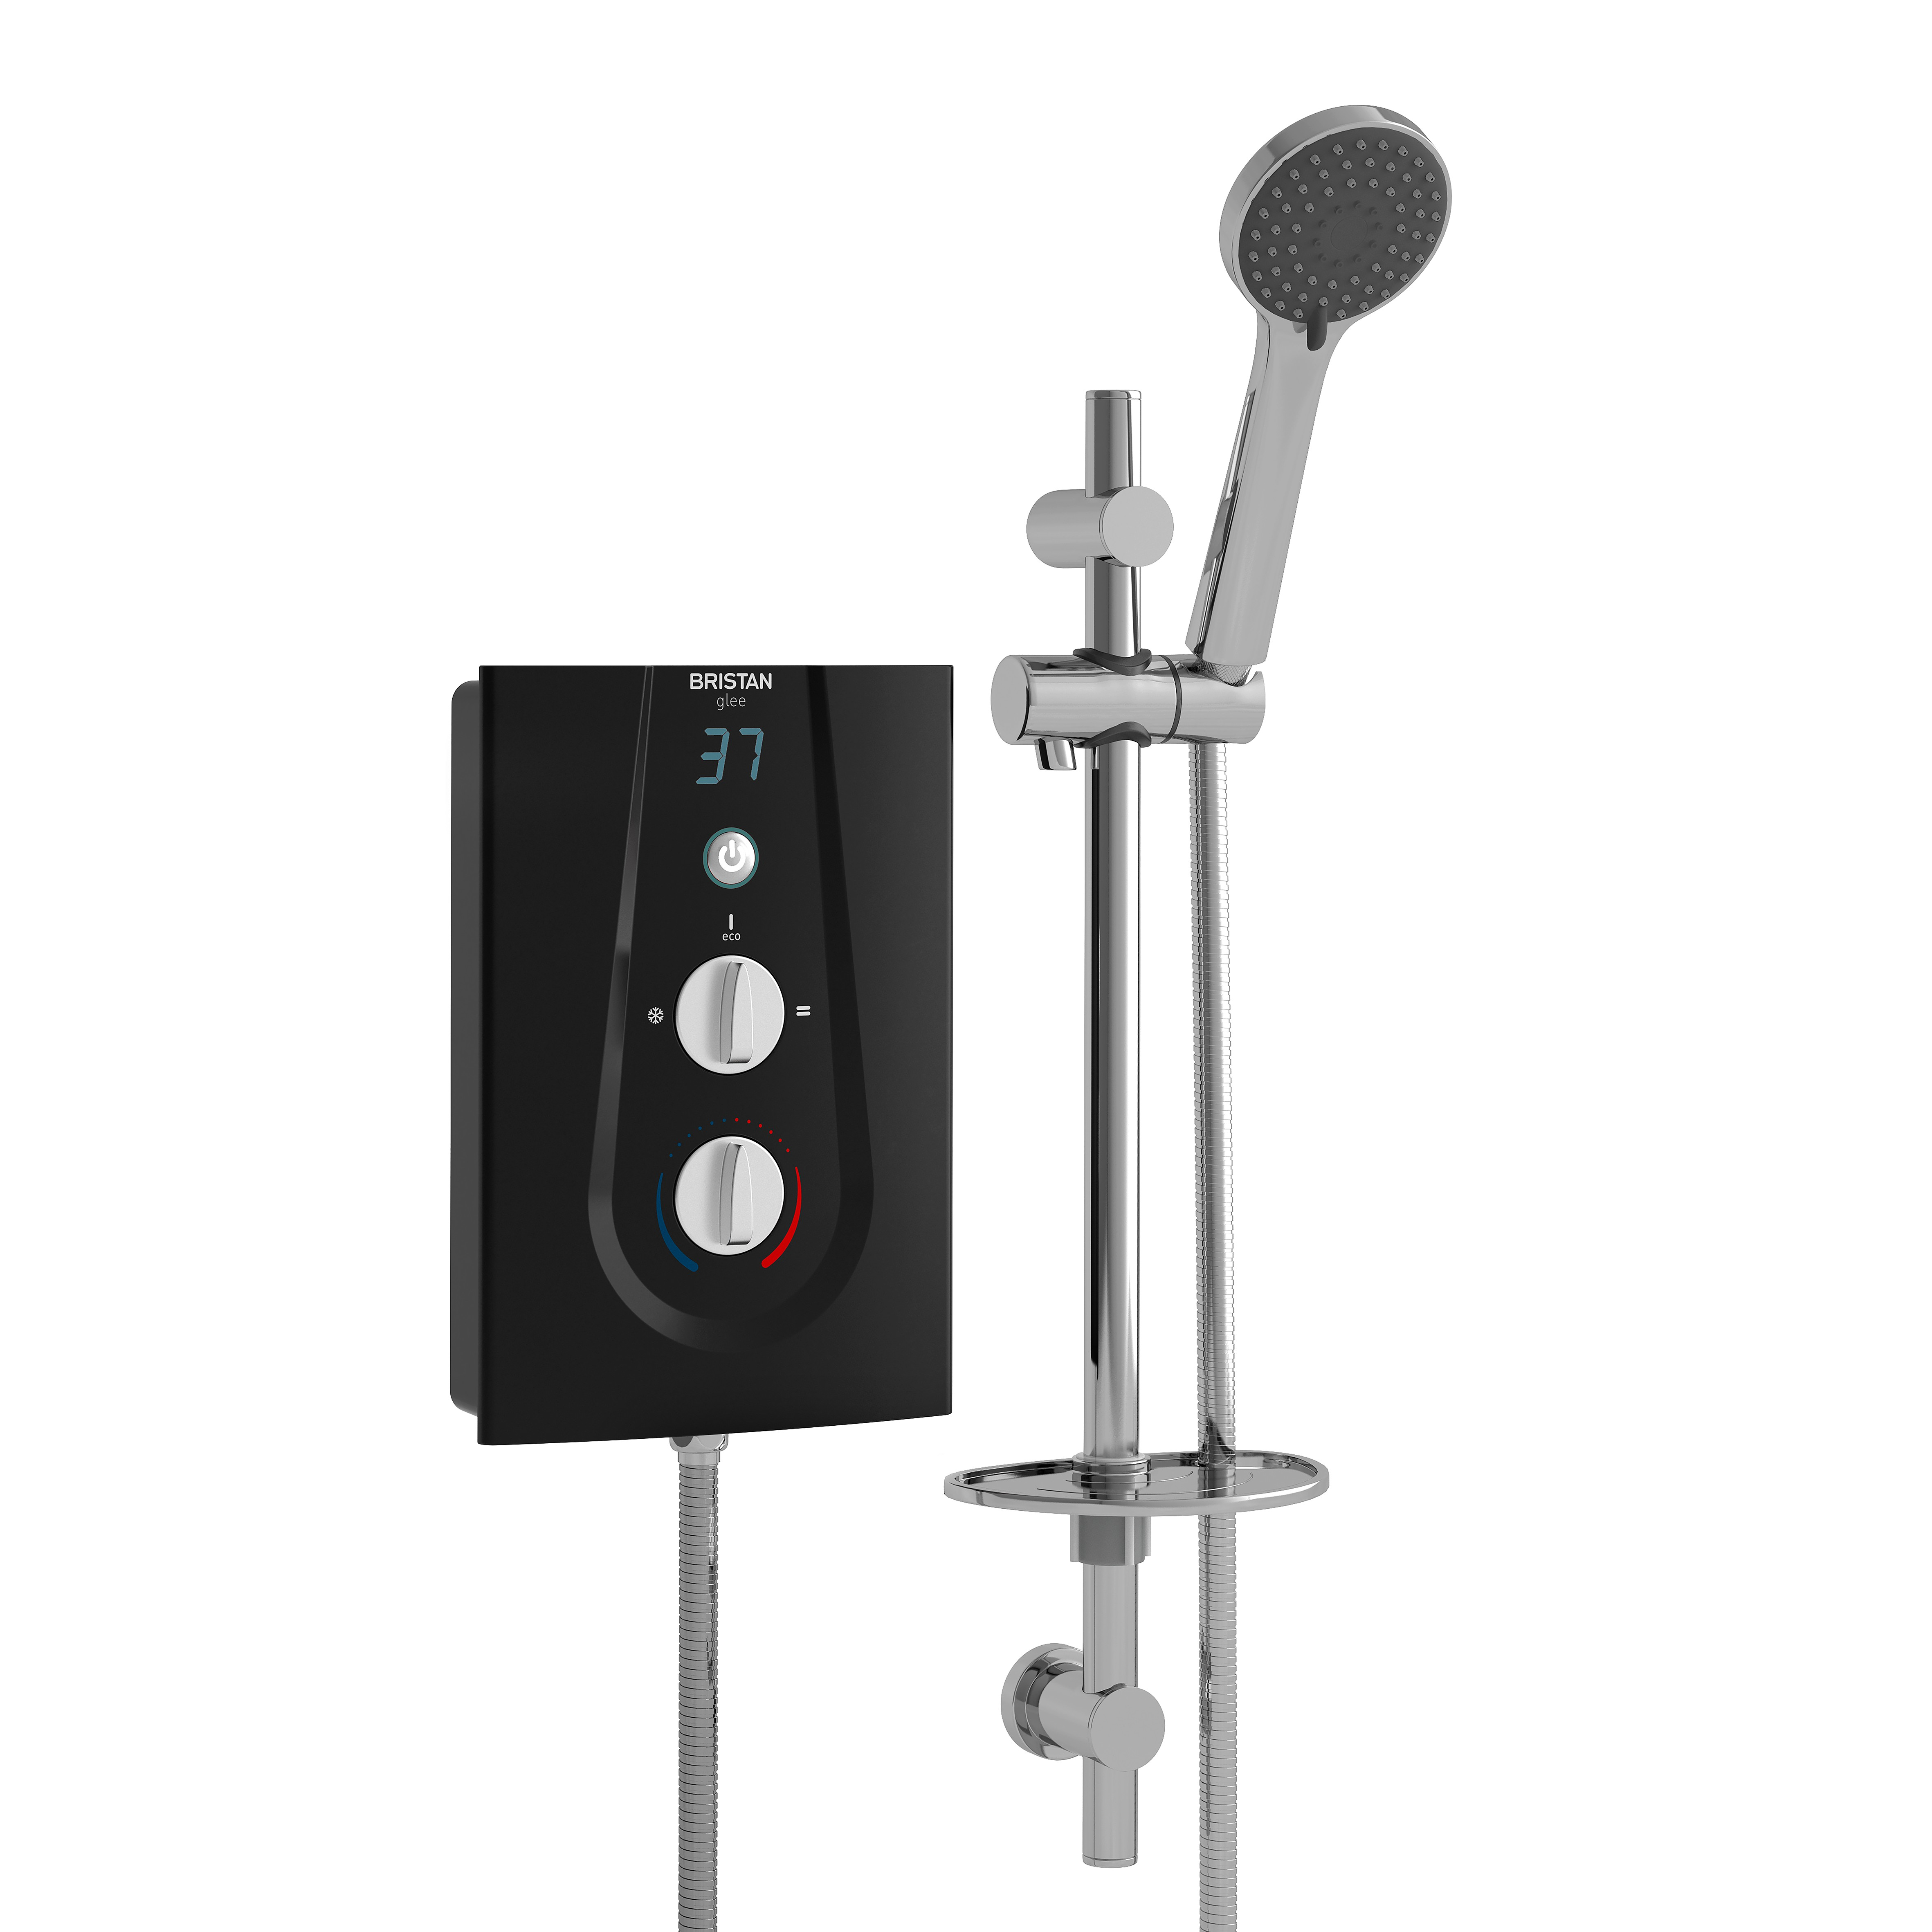 BRISTAN GLEE 8.5KW ELECTRIC SHOWER BLACK - GLE385 B